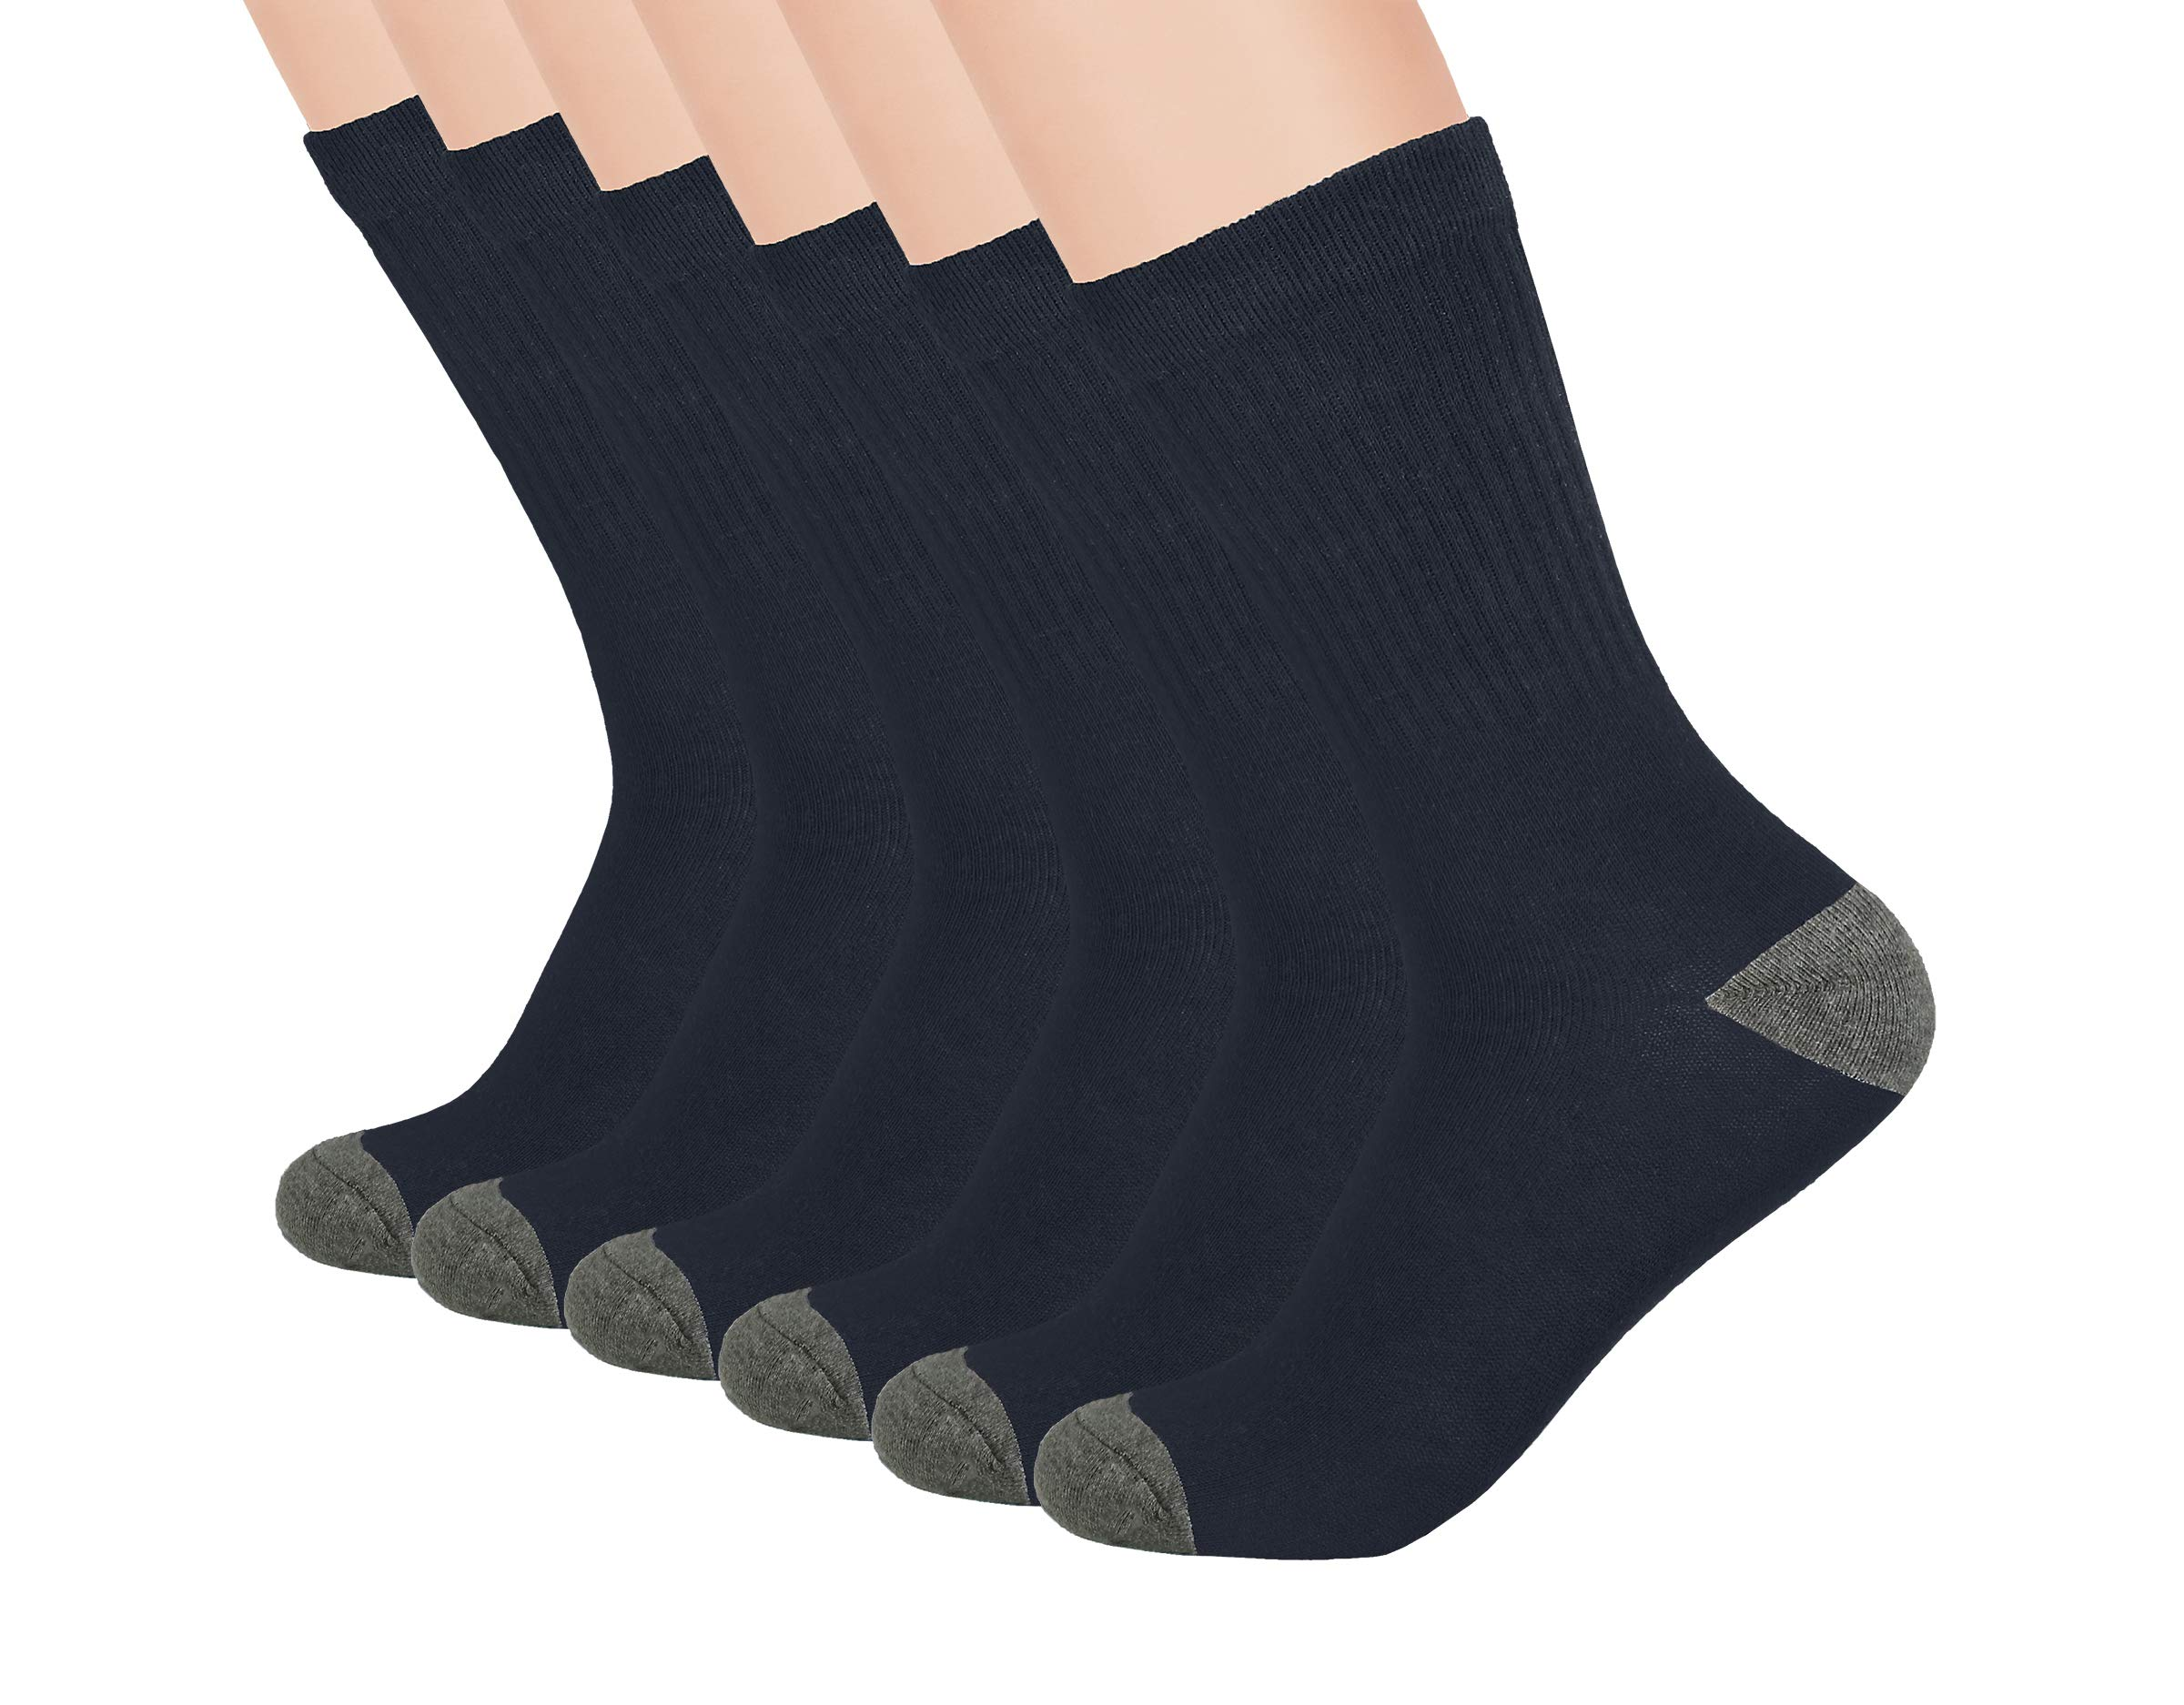 Boys Crew Athletic Ribbed Socks - School Uniform Socks-Breathable, Cushioned - 3 and 6 Pack - White, Navy, Black - by Topfit